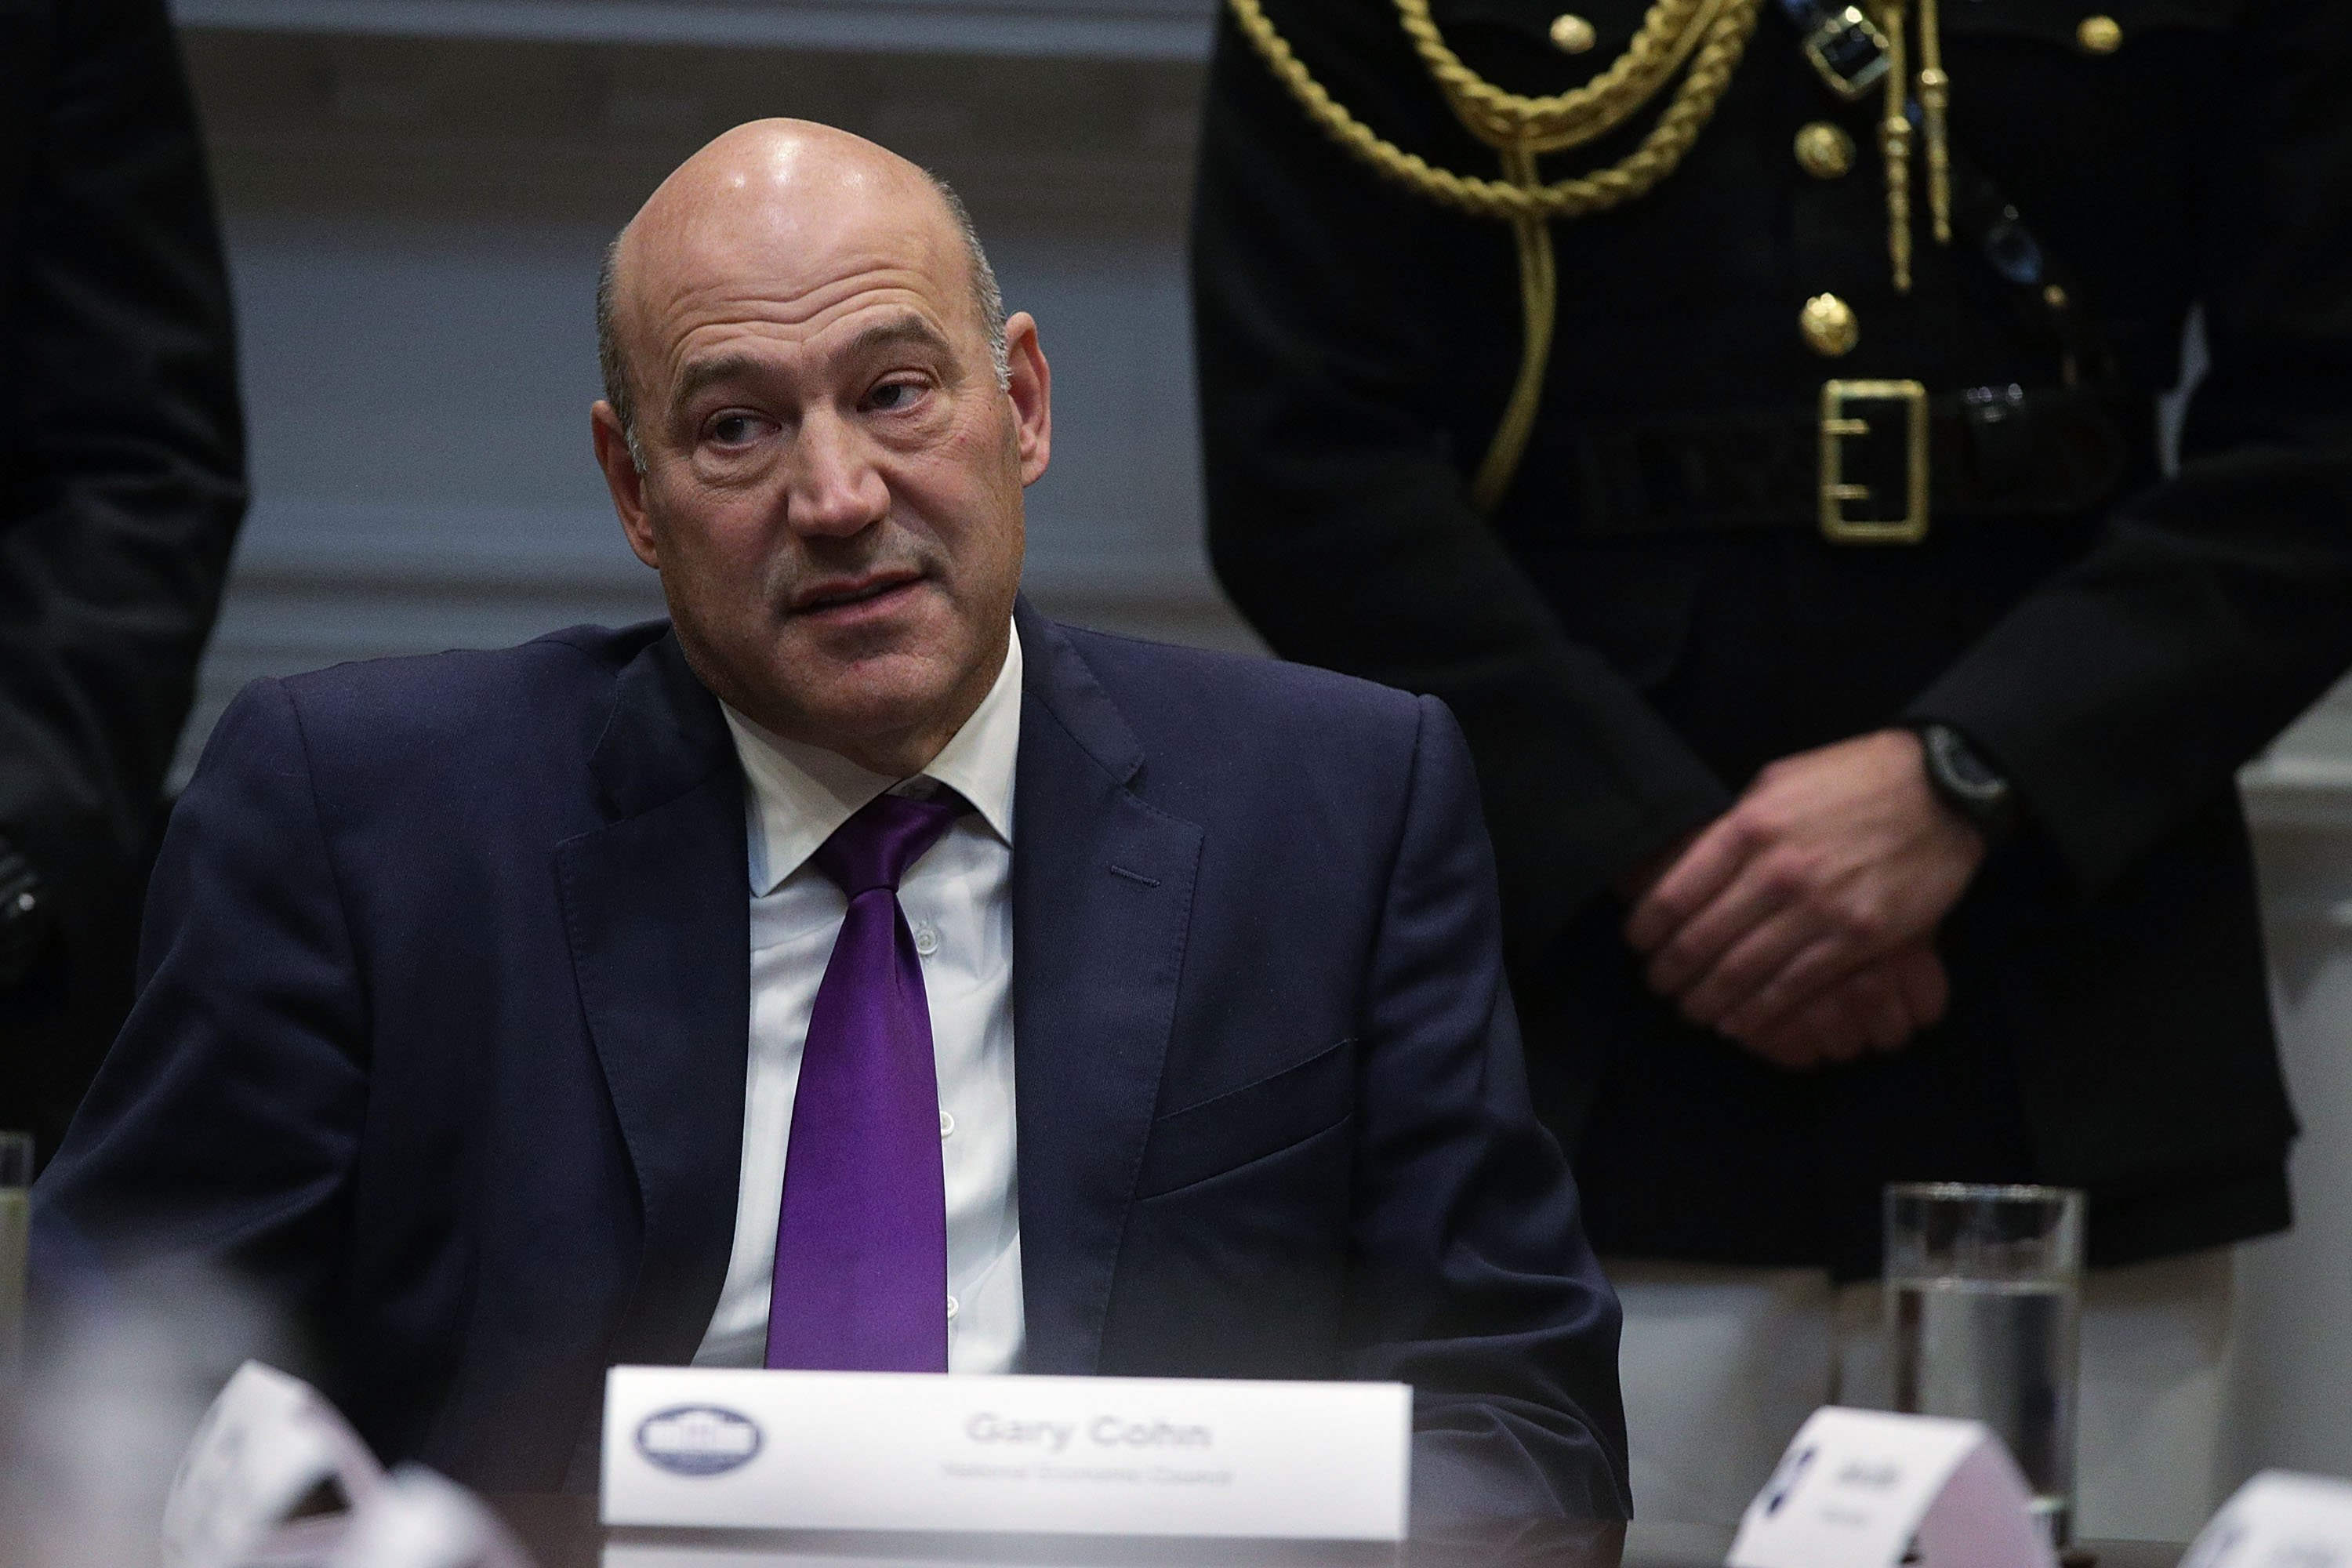 Gary Cohn Trump's top economic adviser resigned from the White House last week after he voiced his fierce disagreement with the President's decision to levy steel and aluminum tariffs